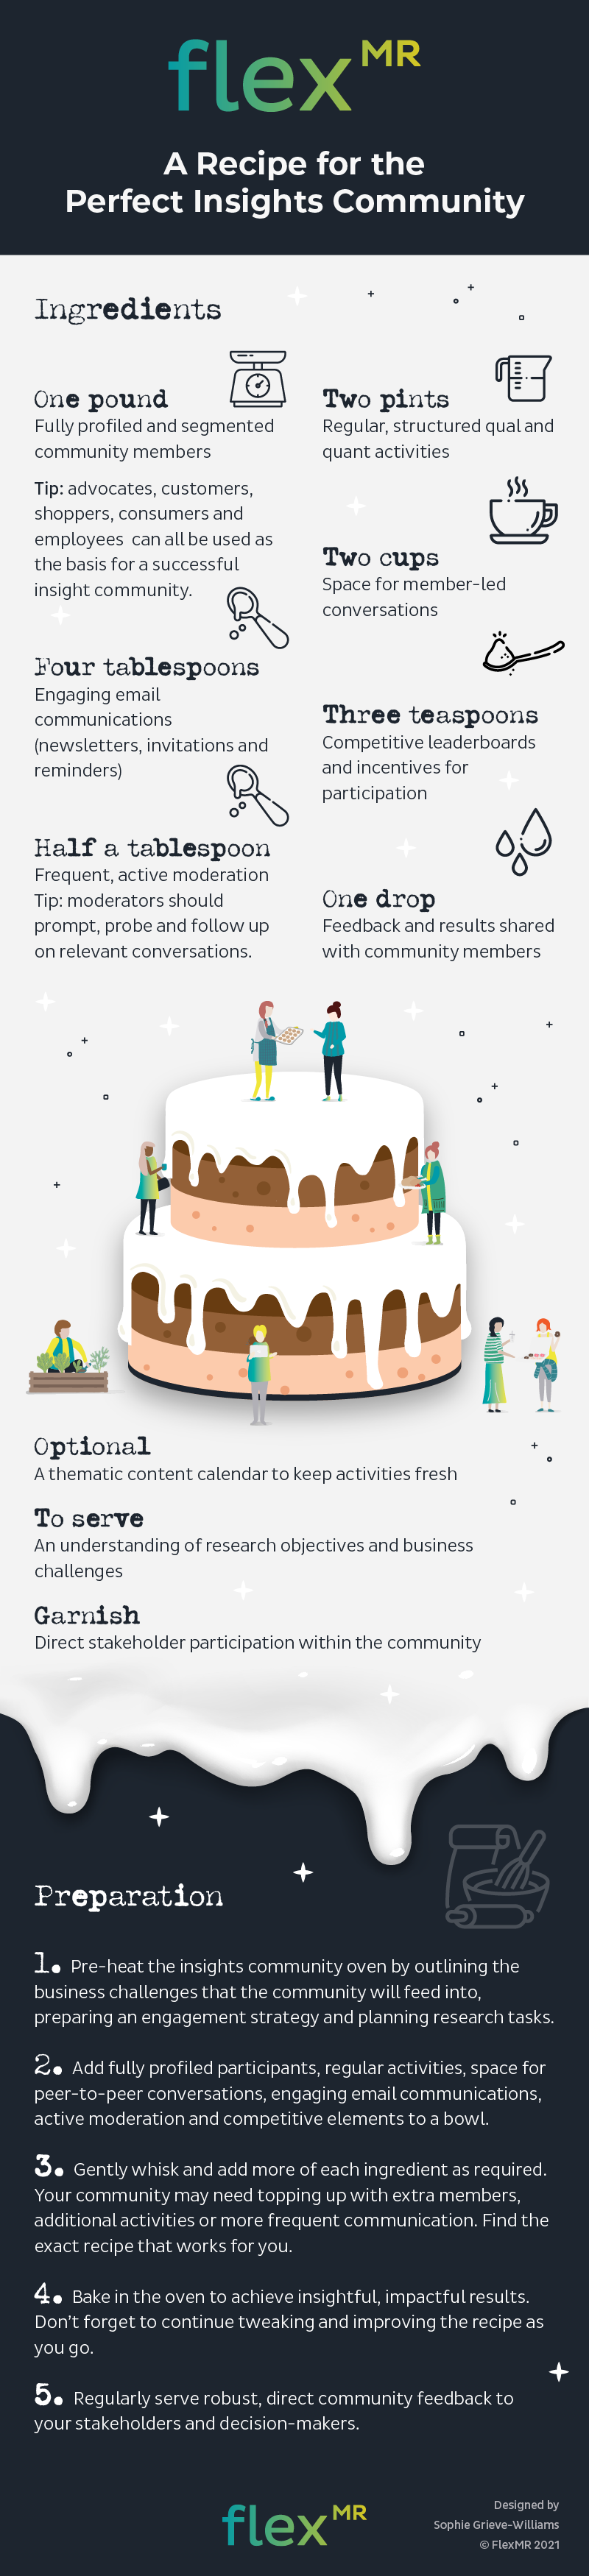 60080 Infographic_A Recipe for the Perfect Insights Community (1)